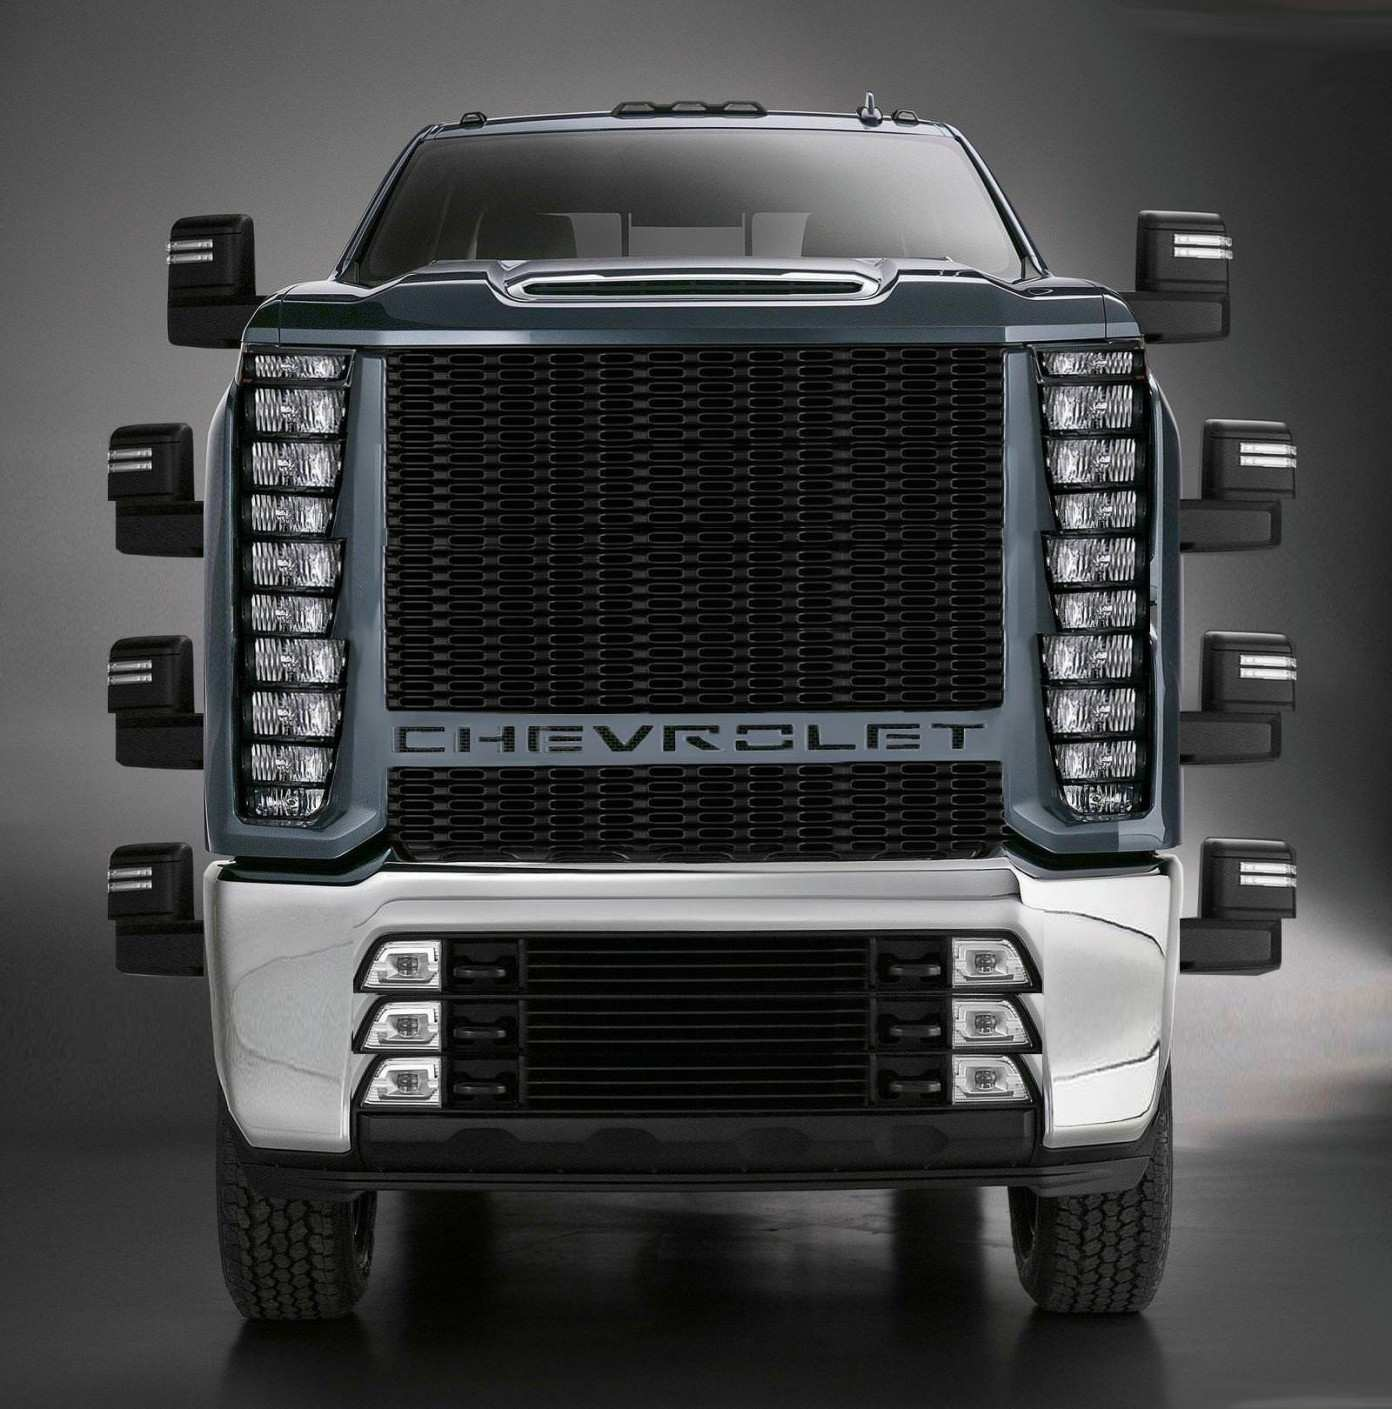 84 The Best Chevrolet Silverado 2020 Photoshop Price And Release Date